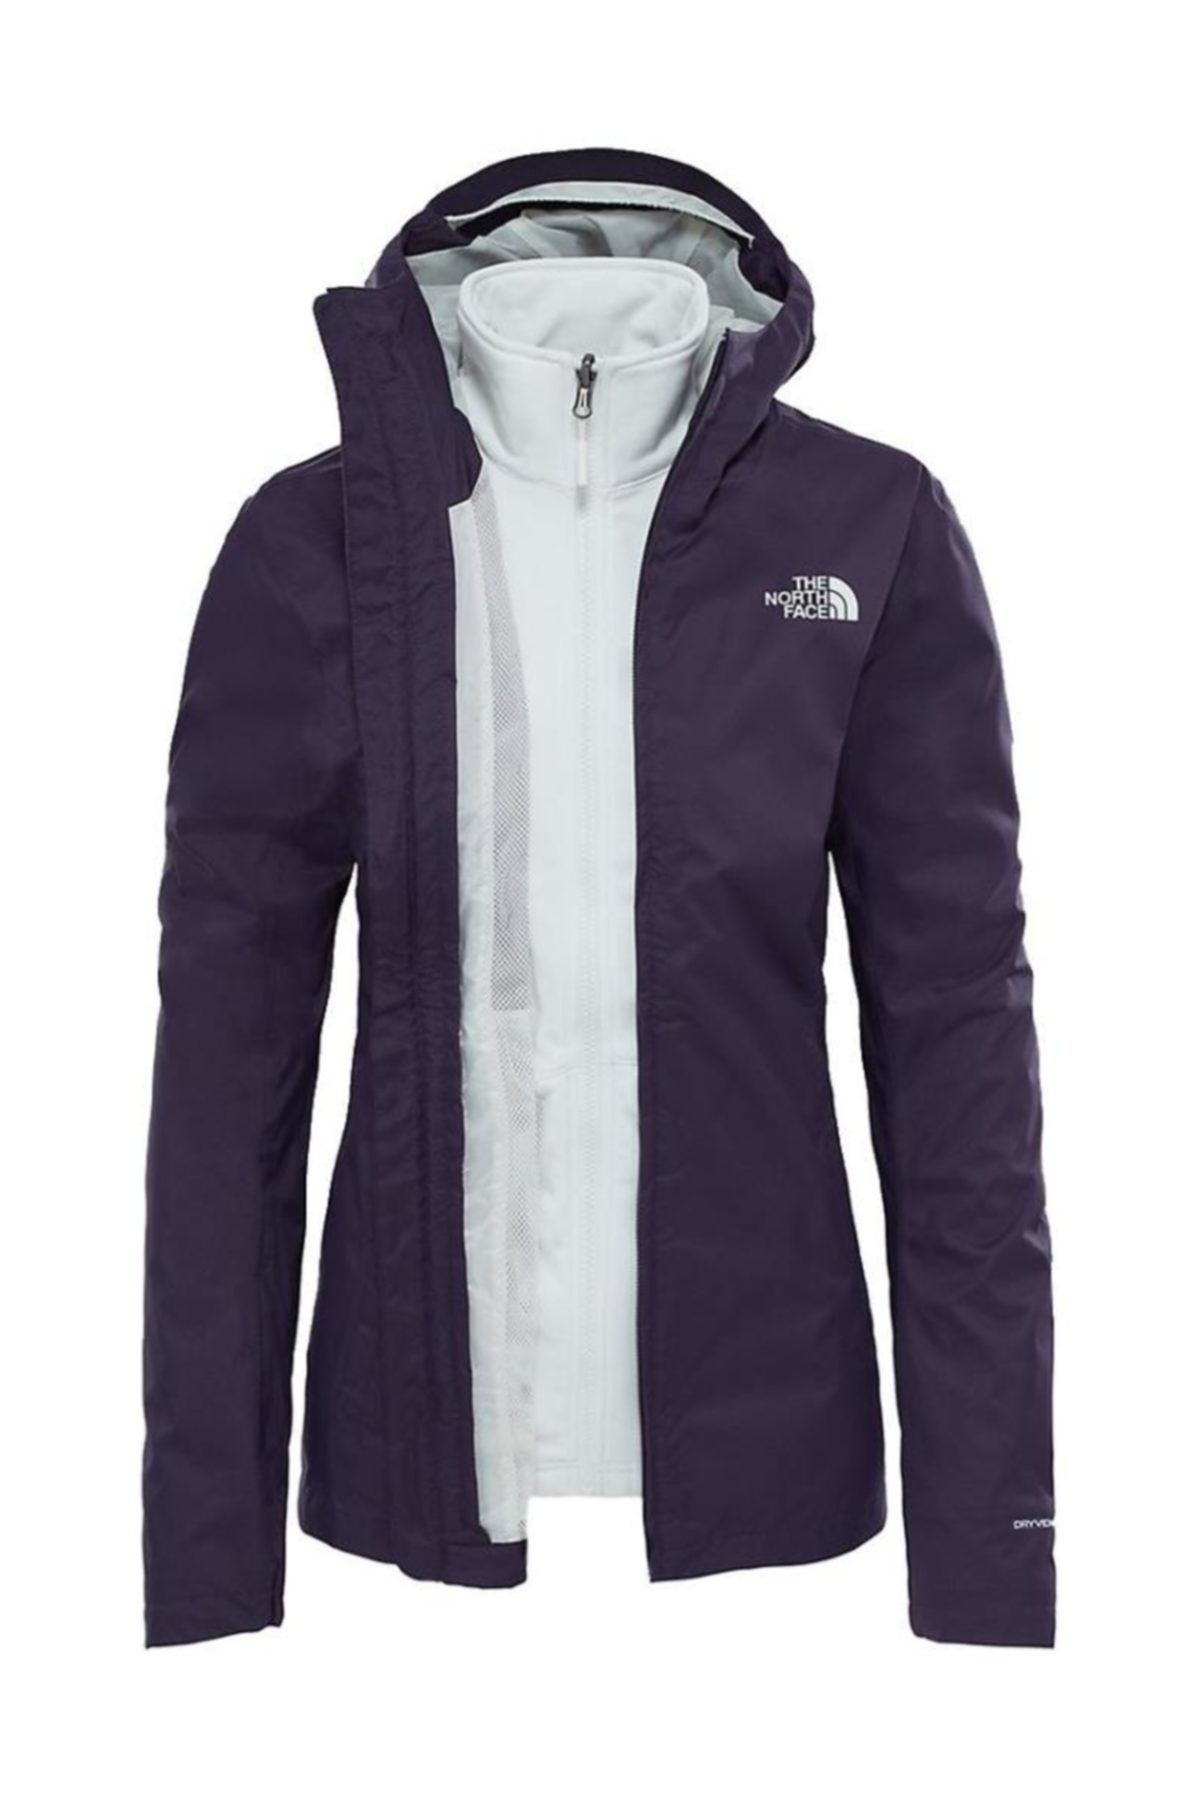 The North Face The North Face Tanken Triclimate Kadın Mont Mor